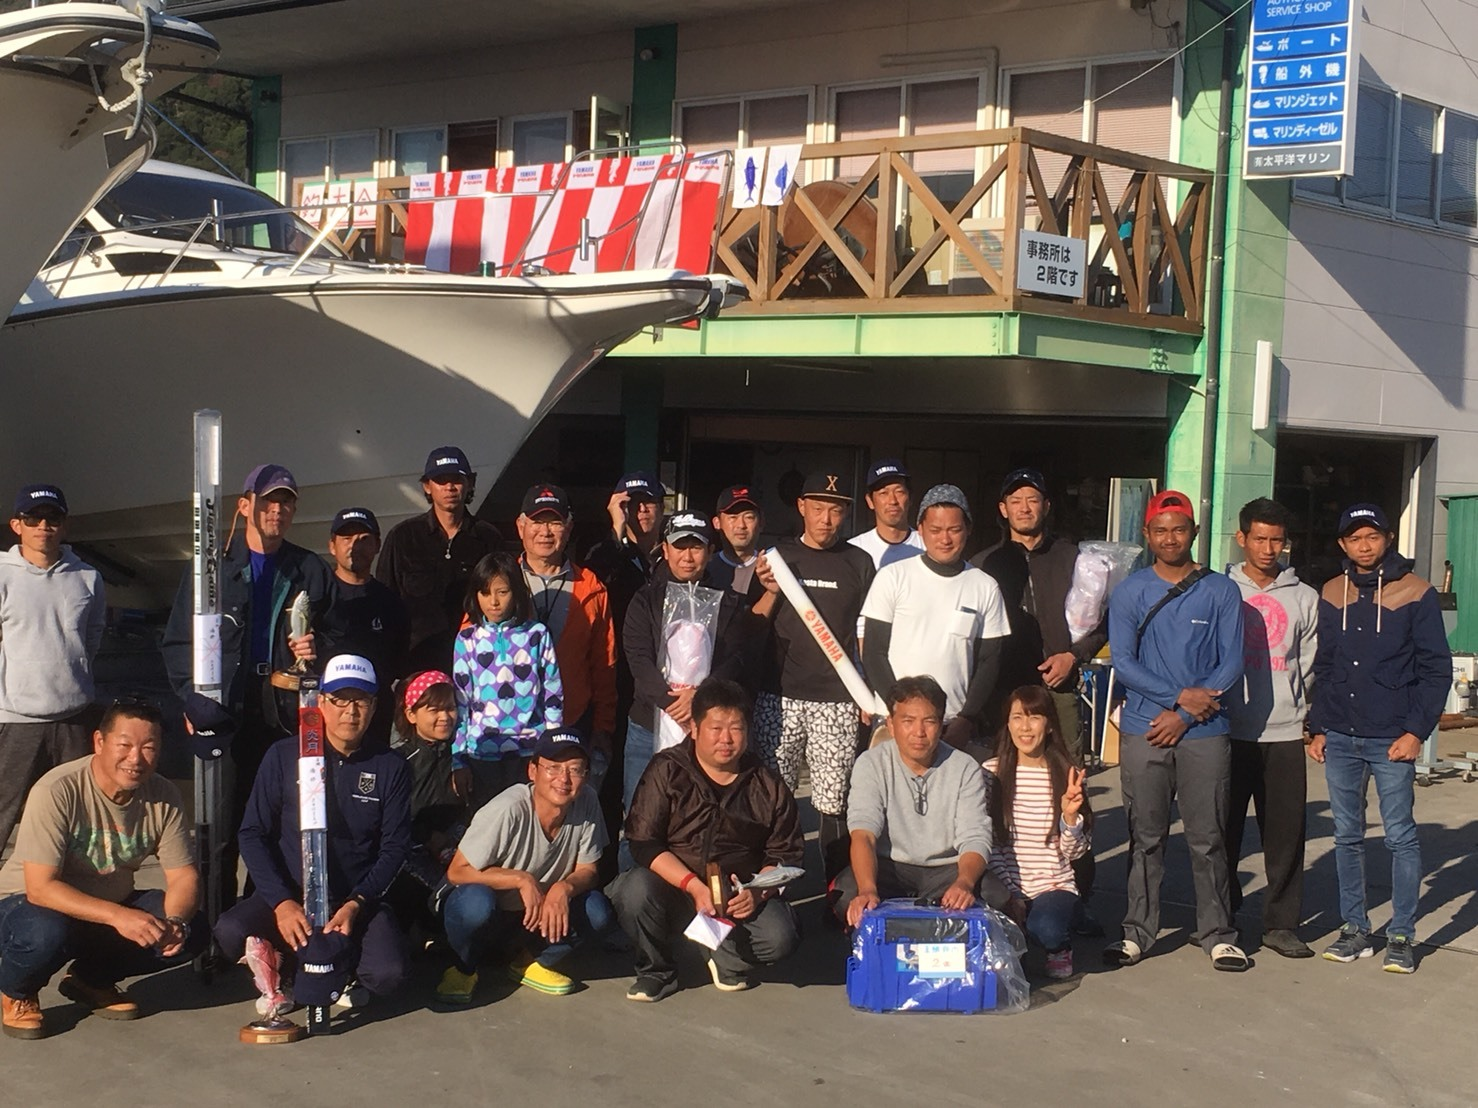 BOAY GAME FISHING in 高知 太平洋マリンcup 2018 レポート!_a0132631_15372804.jpg